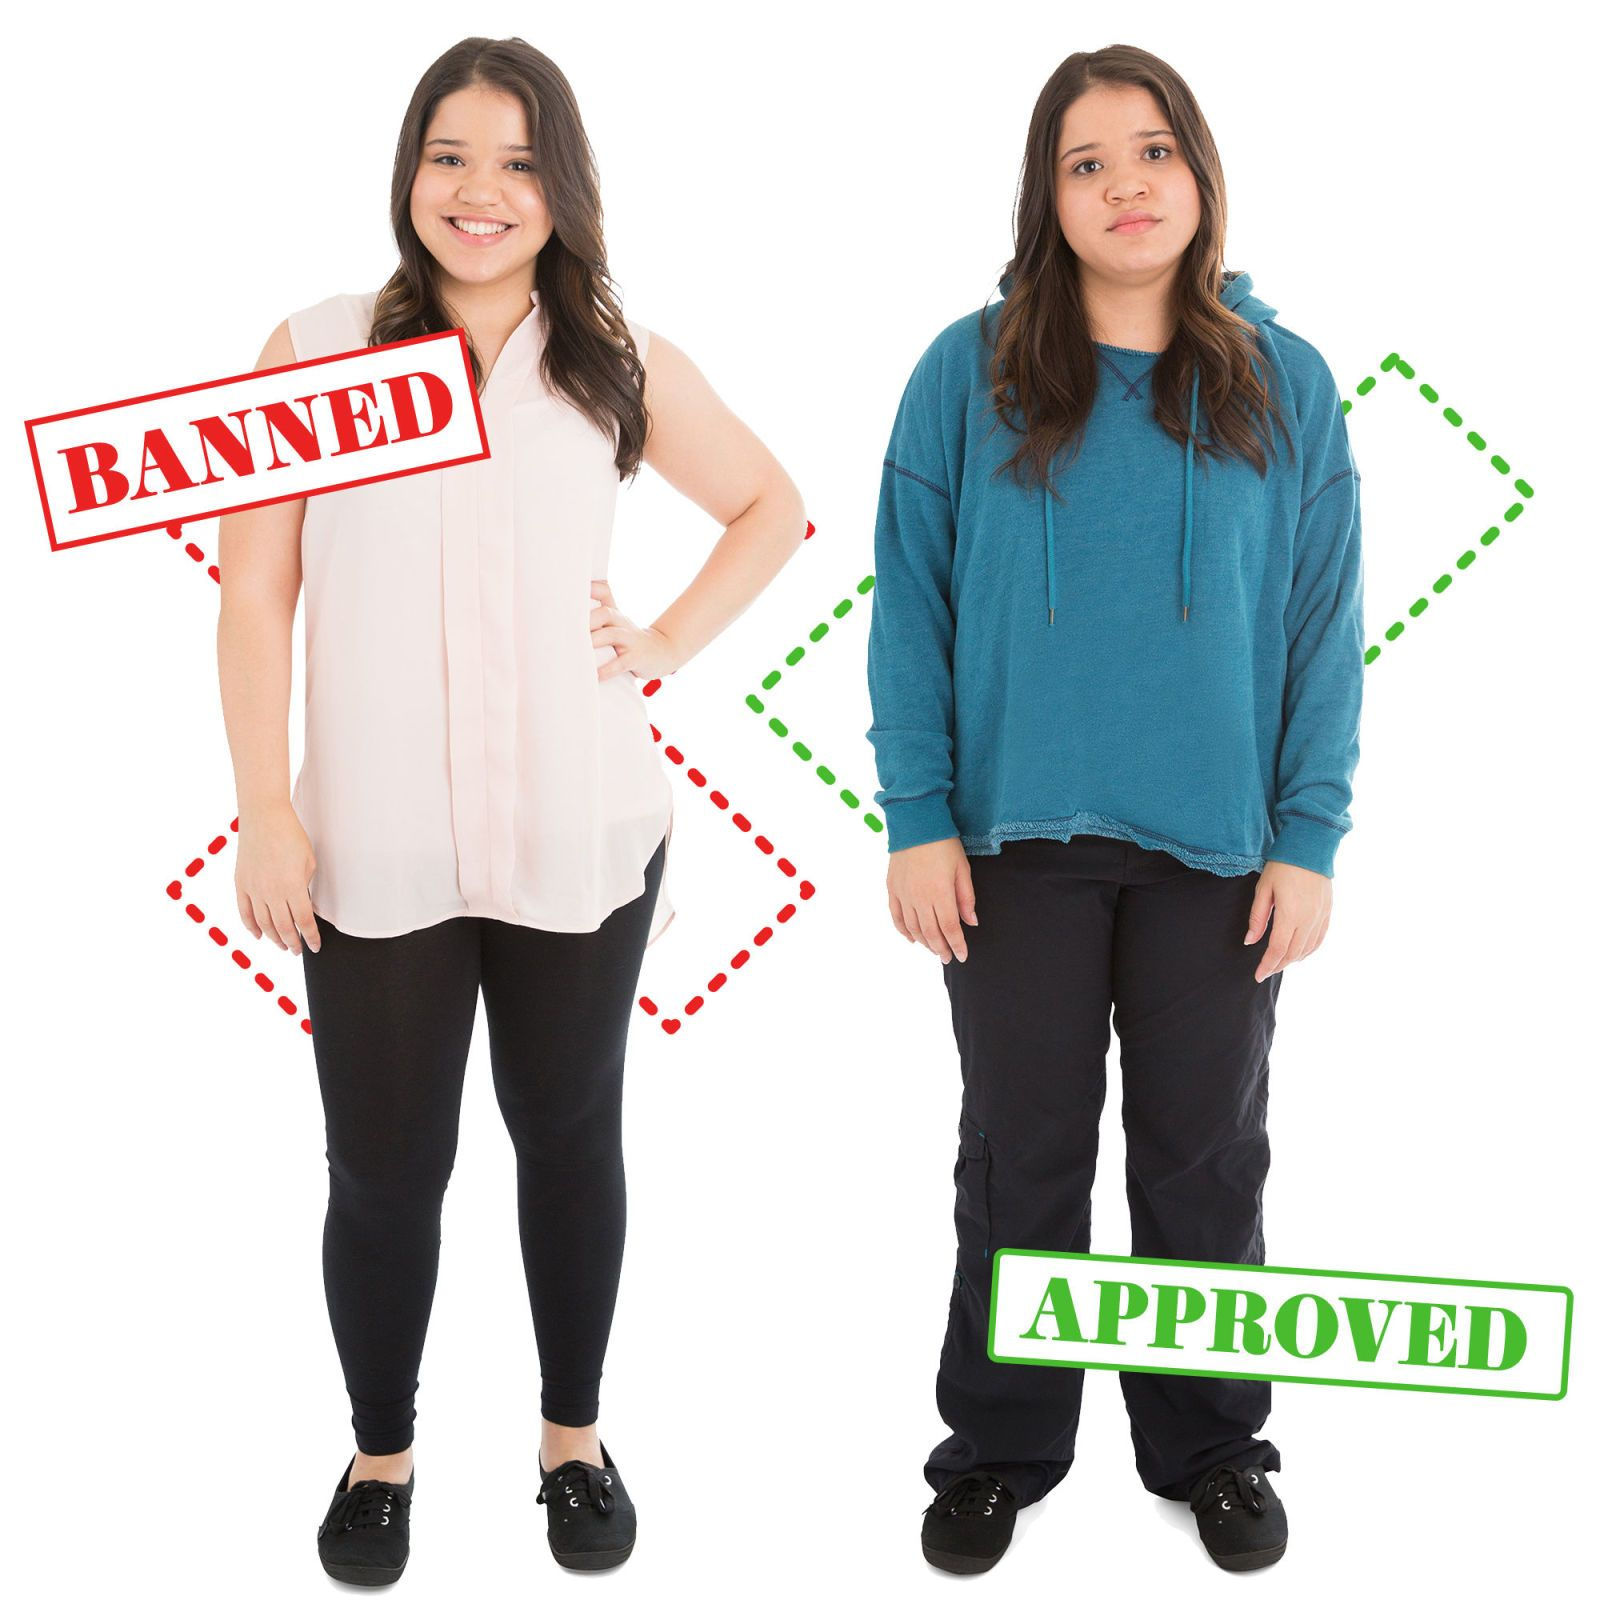 32b40b500f 10 Banned Vs. Approved Outfits That Show How Ridiculous School Dress Codes  Really Are - Seventeen.com